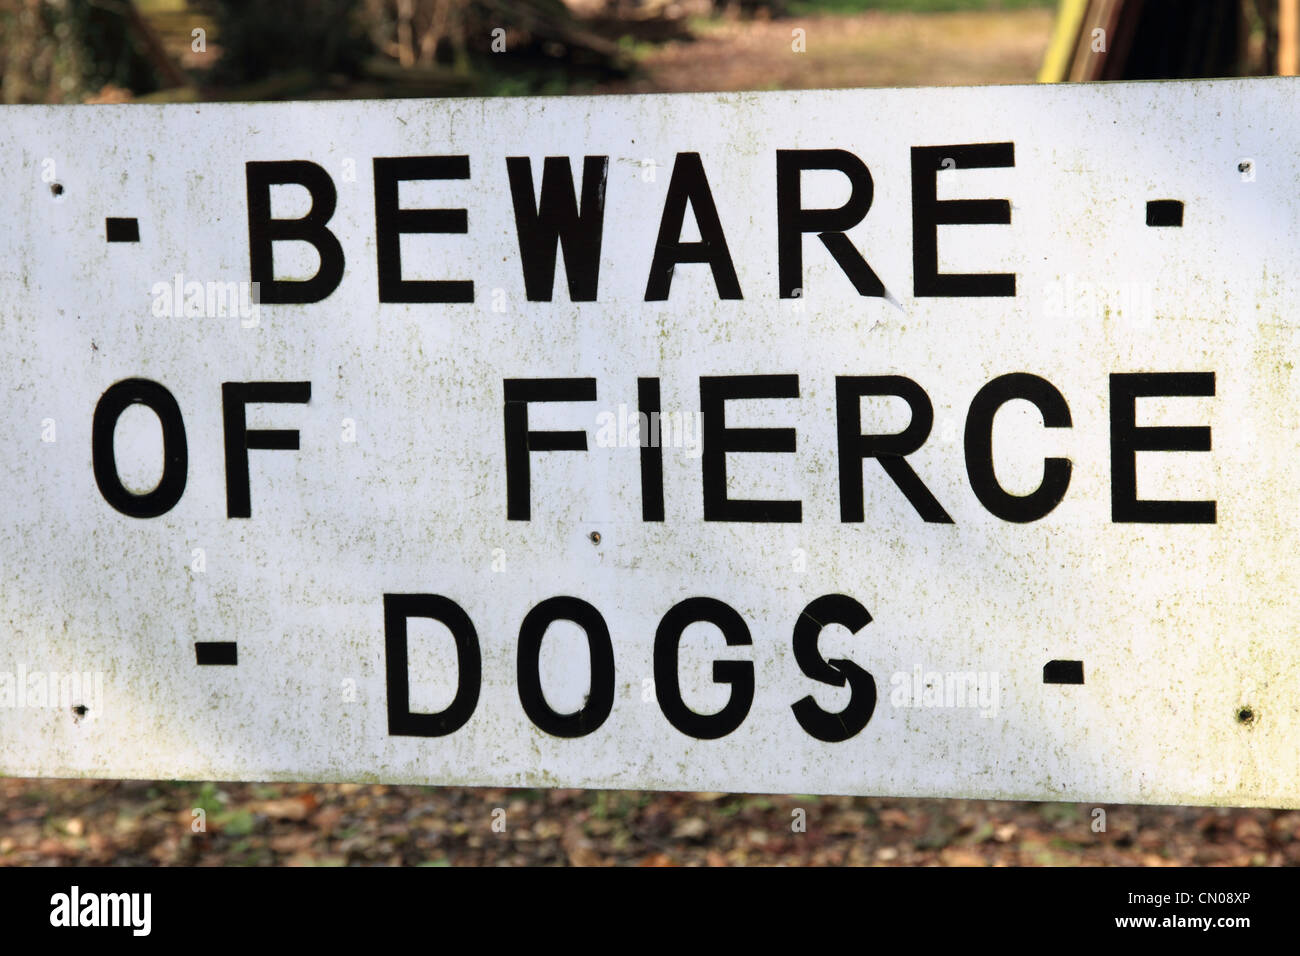 England Oxfordshire Beware of Fierce Dogs notice - Stock Image